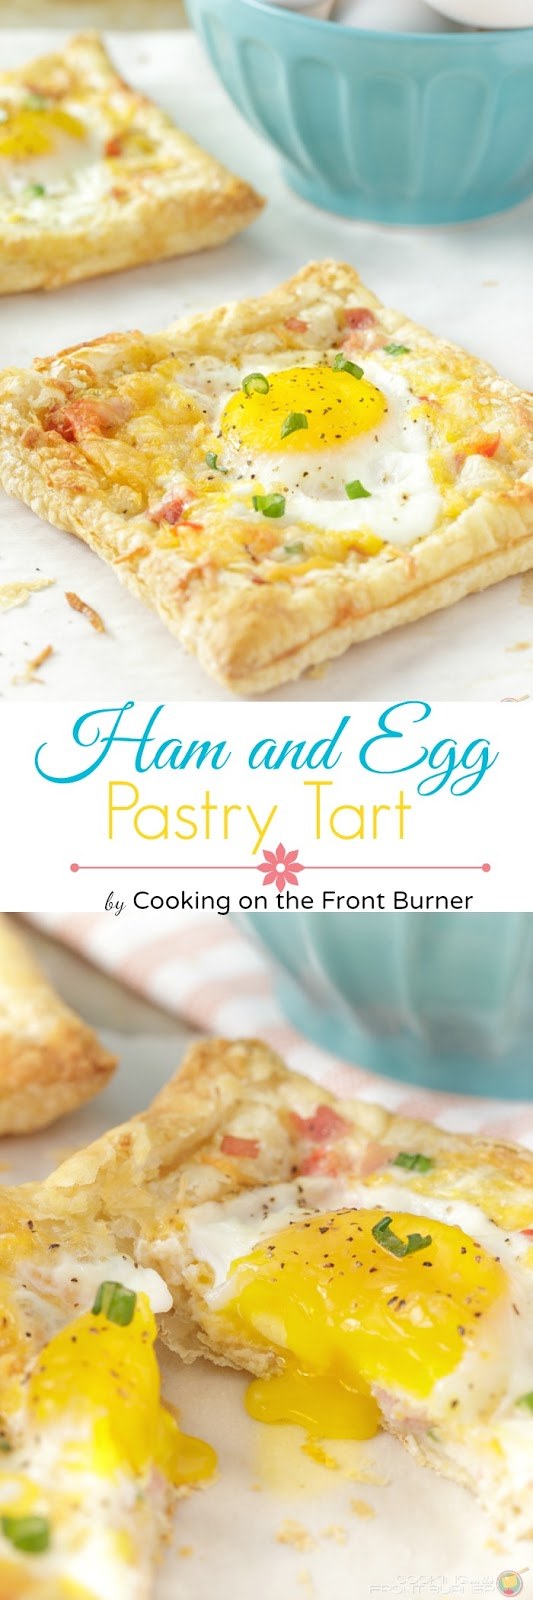 Egg and Ham Puffed Pastry Tart | Cooking on the Front Burner